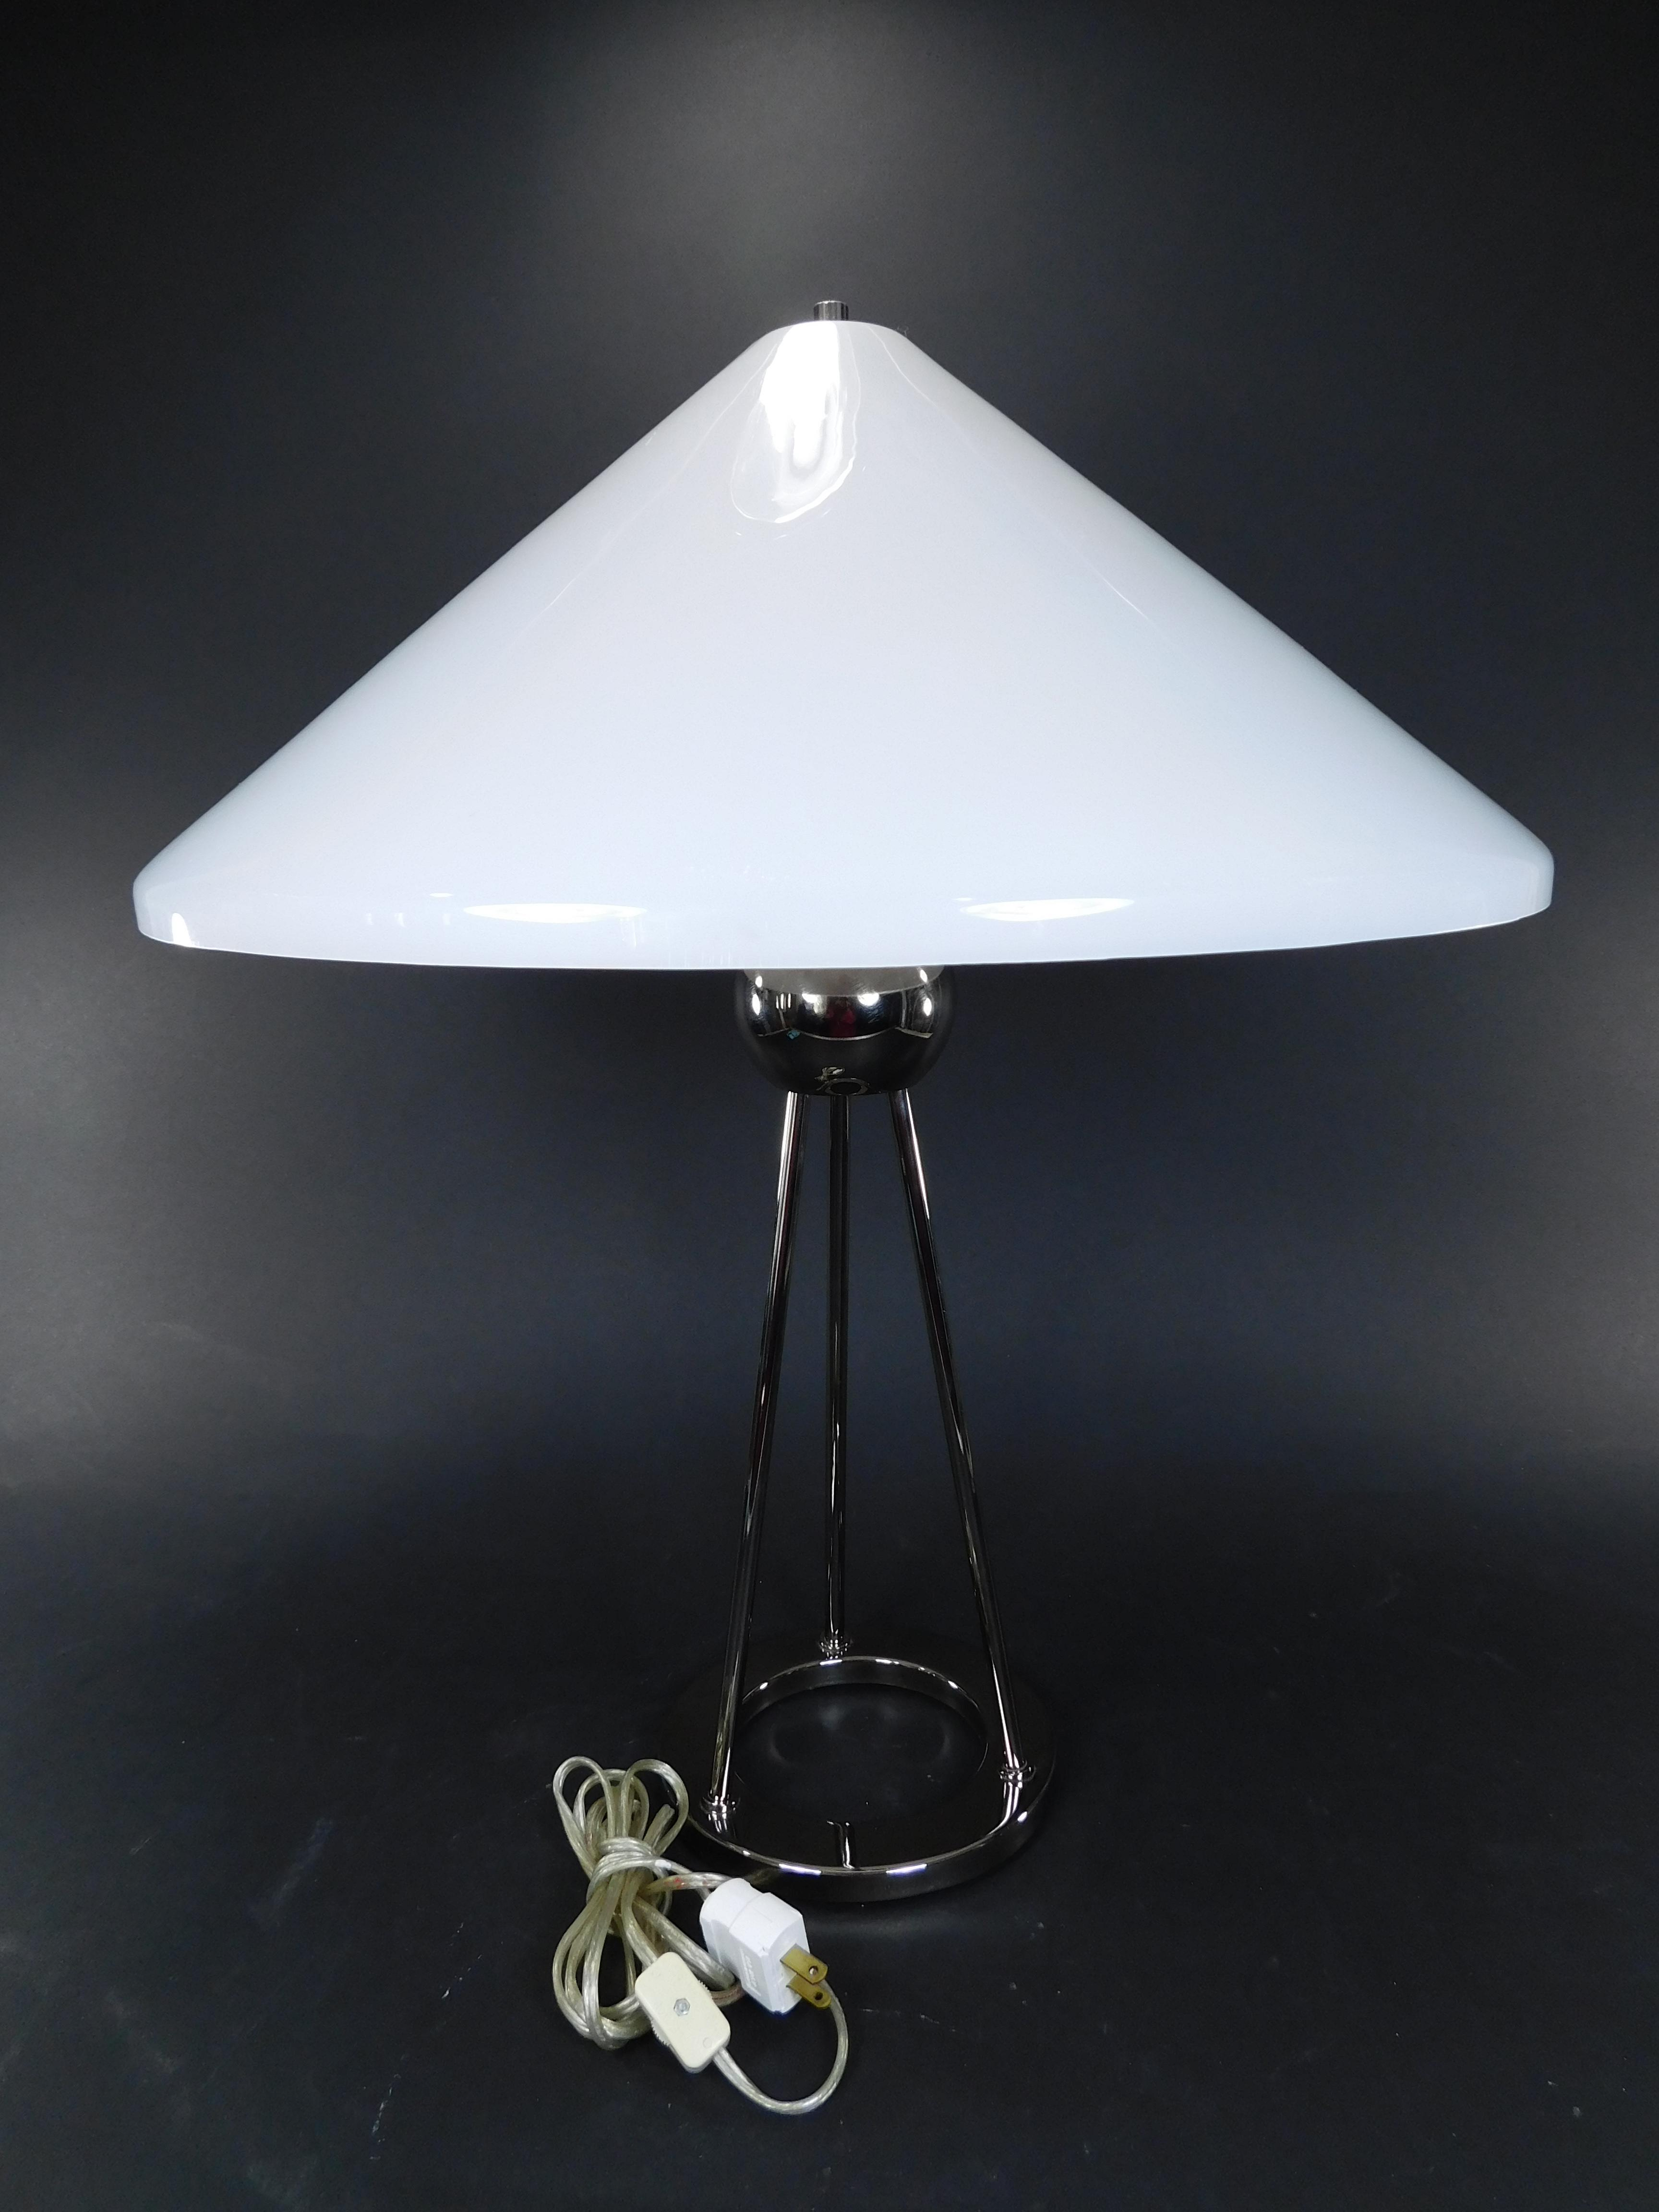 walter von nessen chrome tripod table lamp image 4 of 11